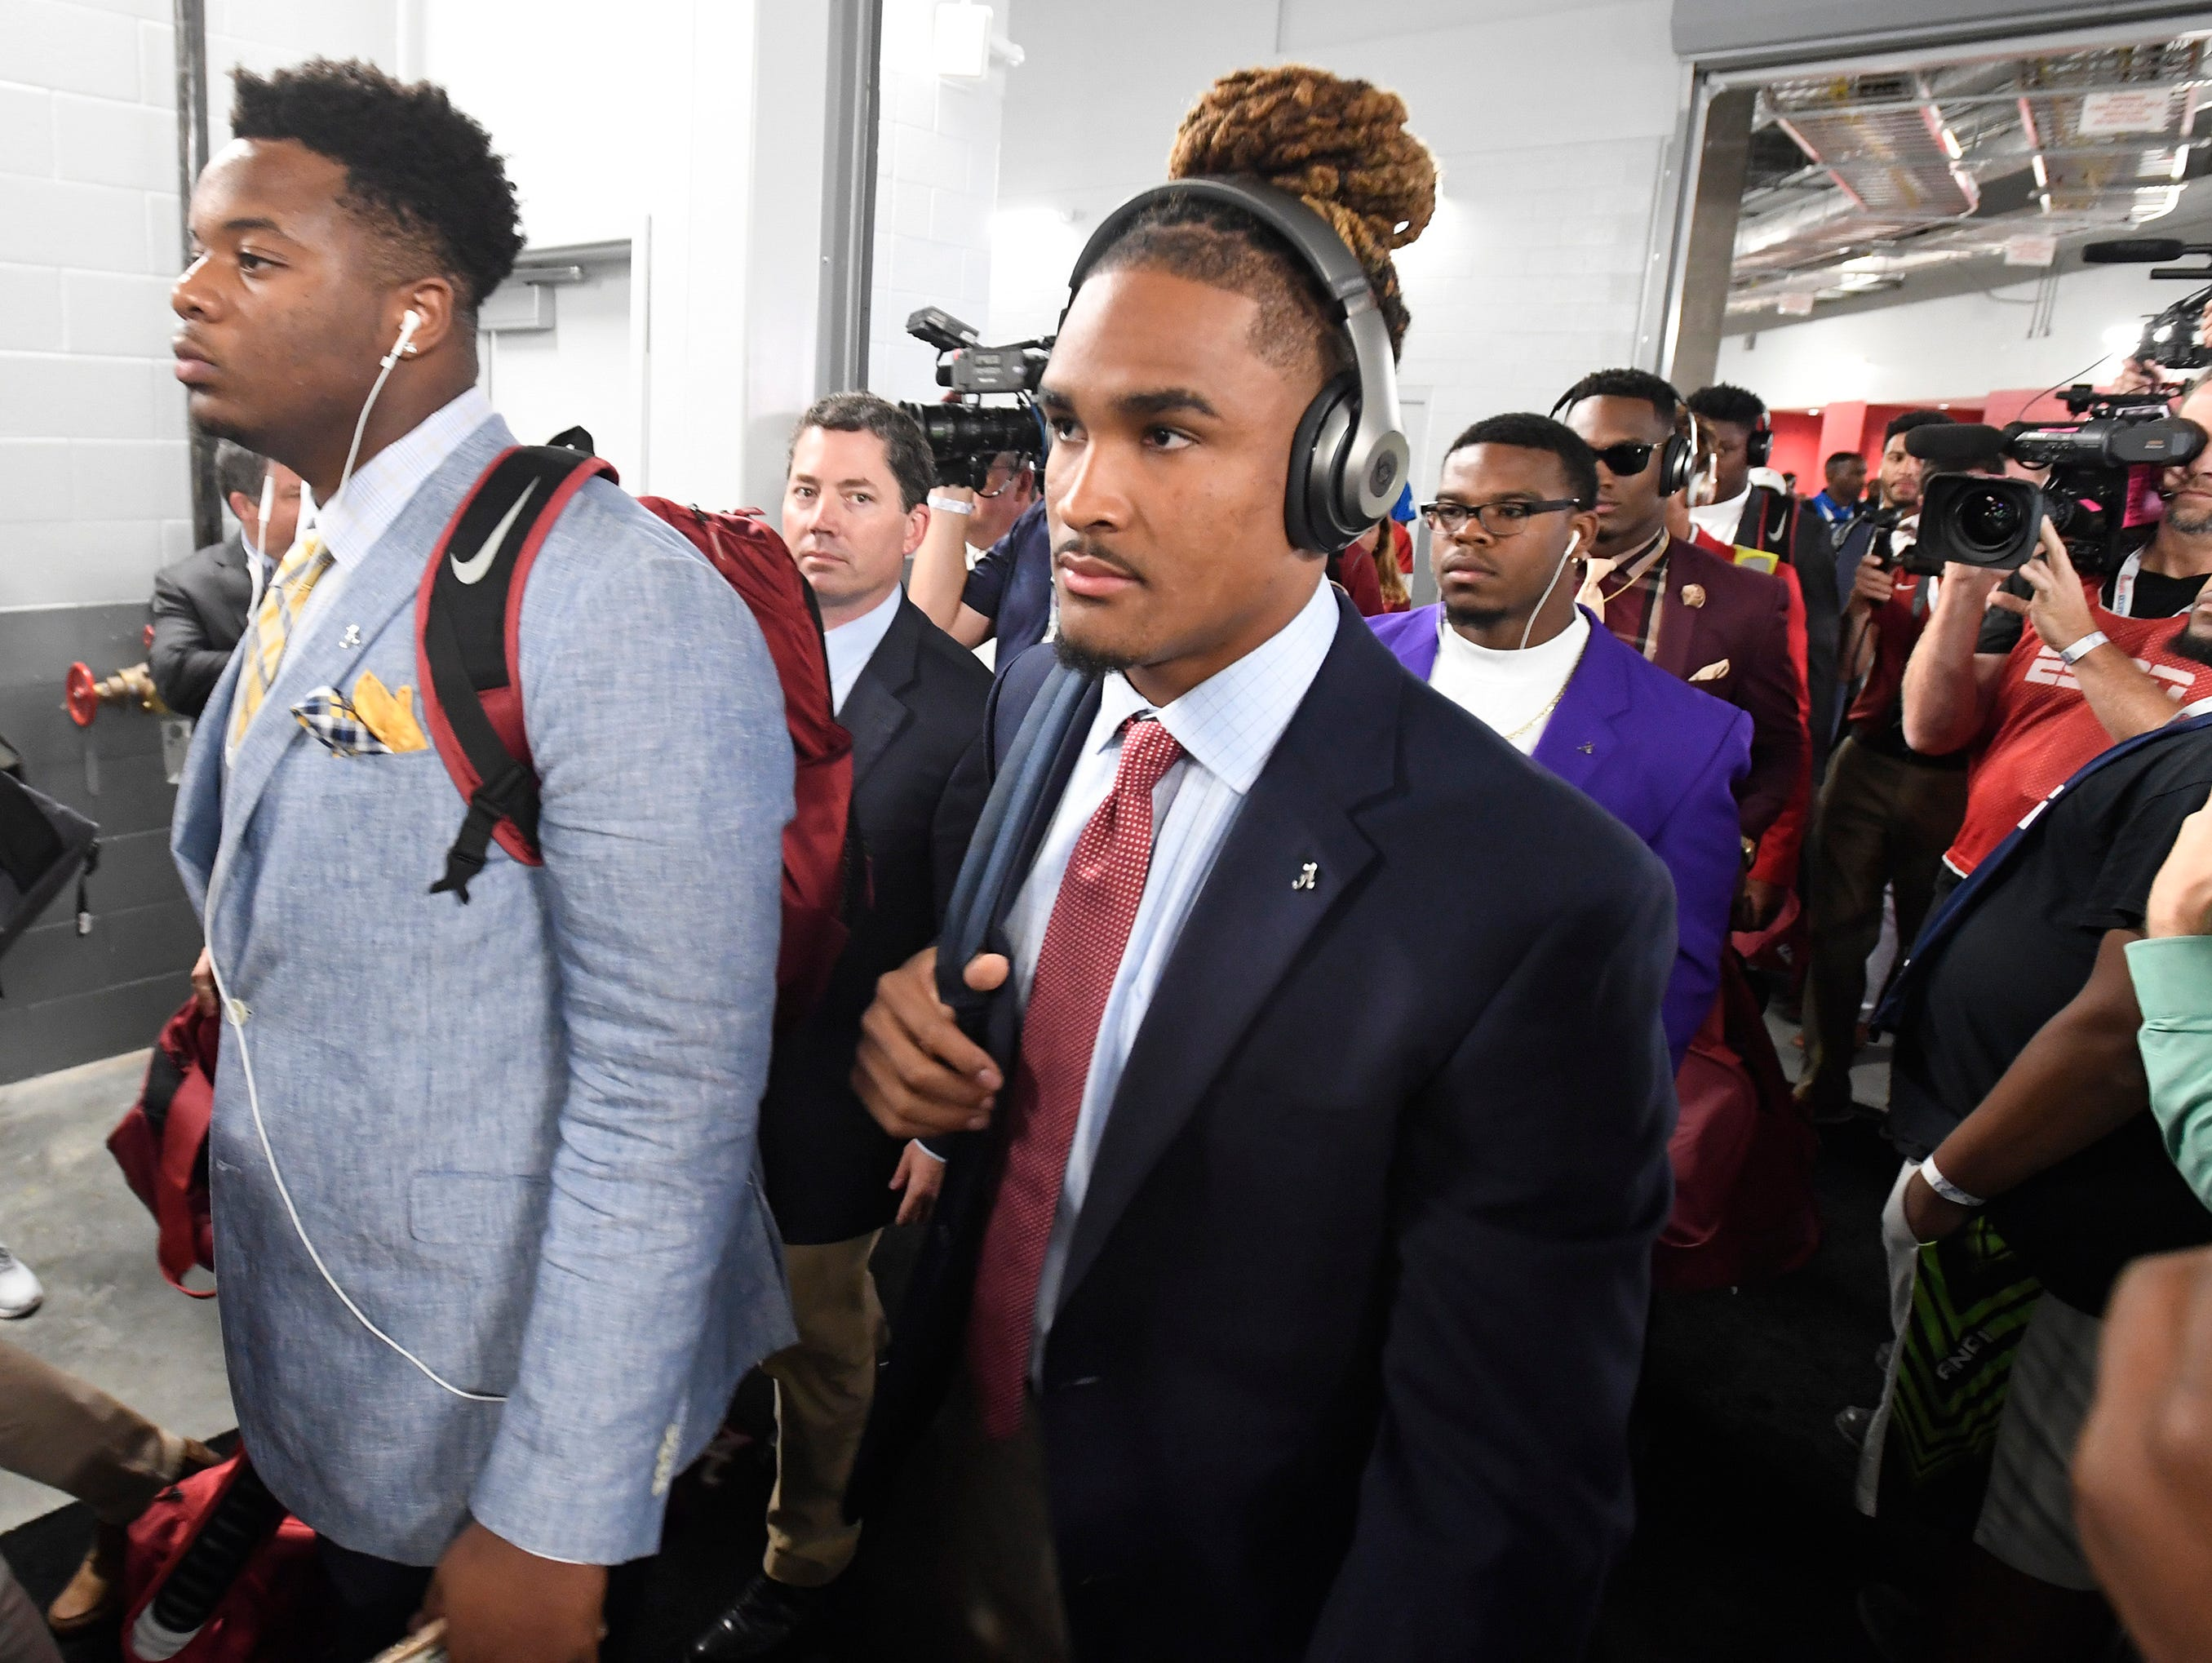 Alabama quarterback Jalen Hurts (2) arrives at the Mercedes - Benz Stadium in Atlanta, Ga., on Saturday September 2, 2017.